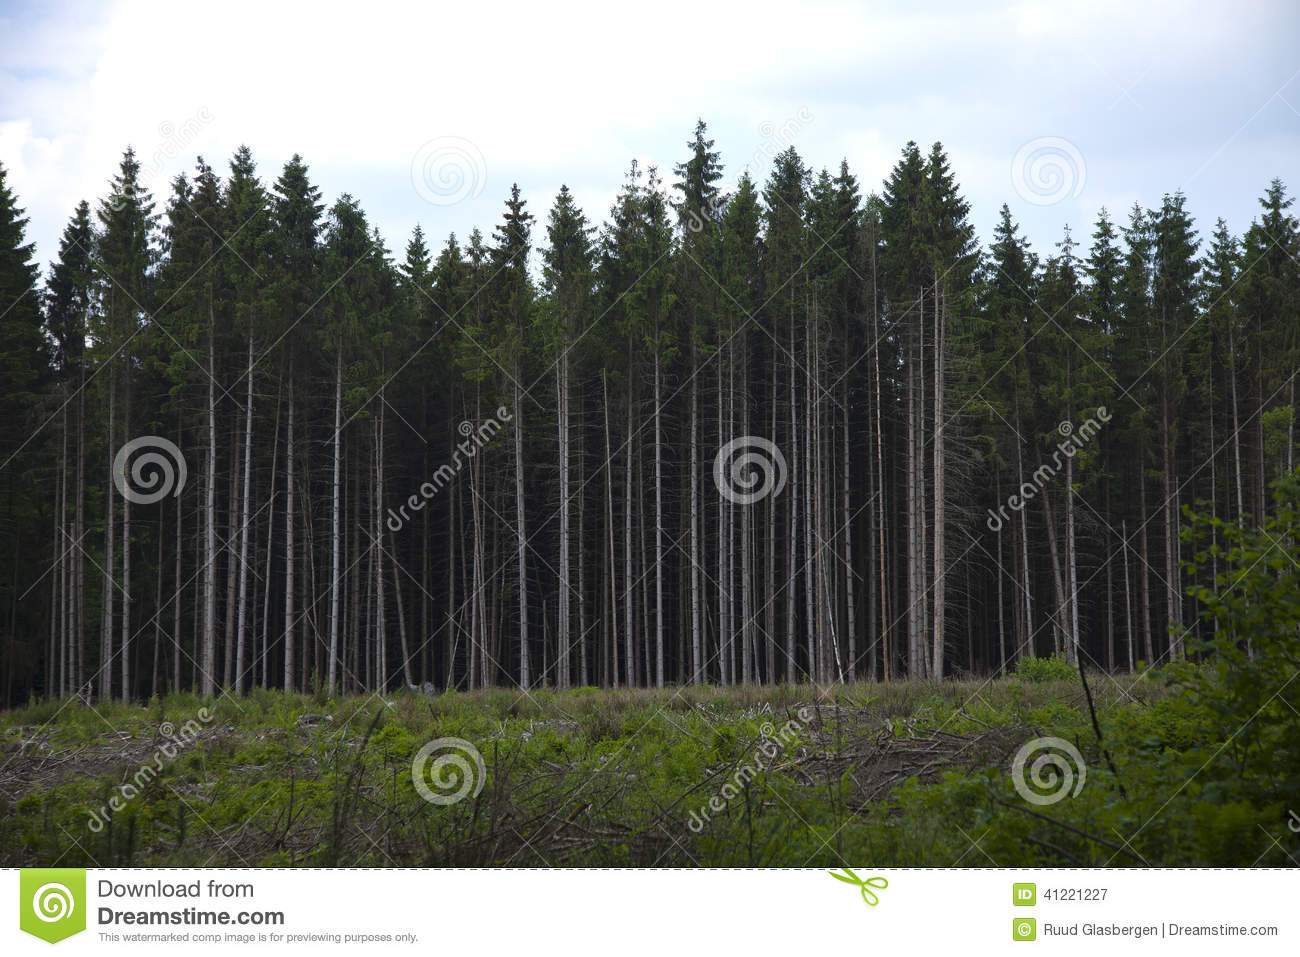 Plot with pine trees for timber stock photo image 41221227 for Pine tree timber